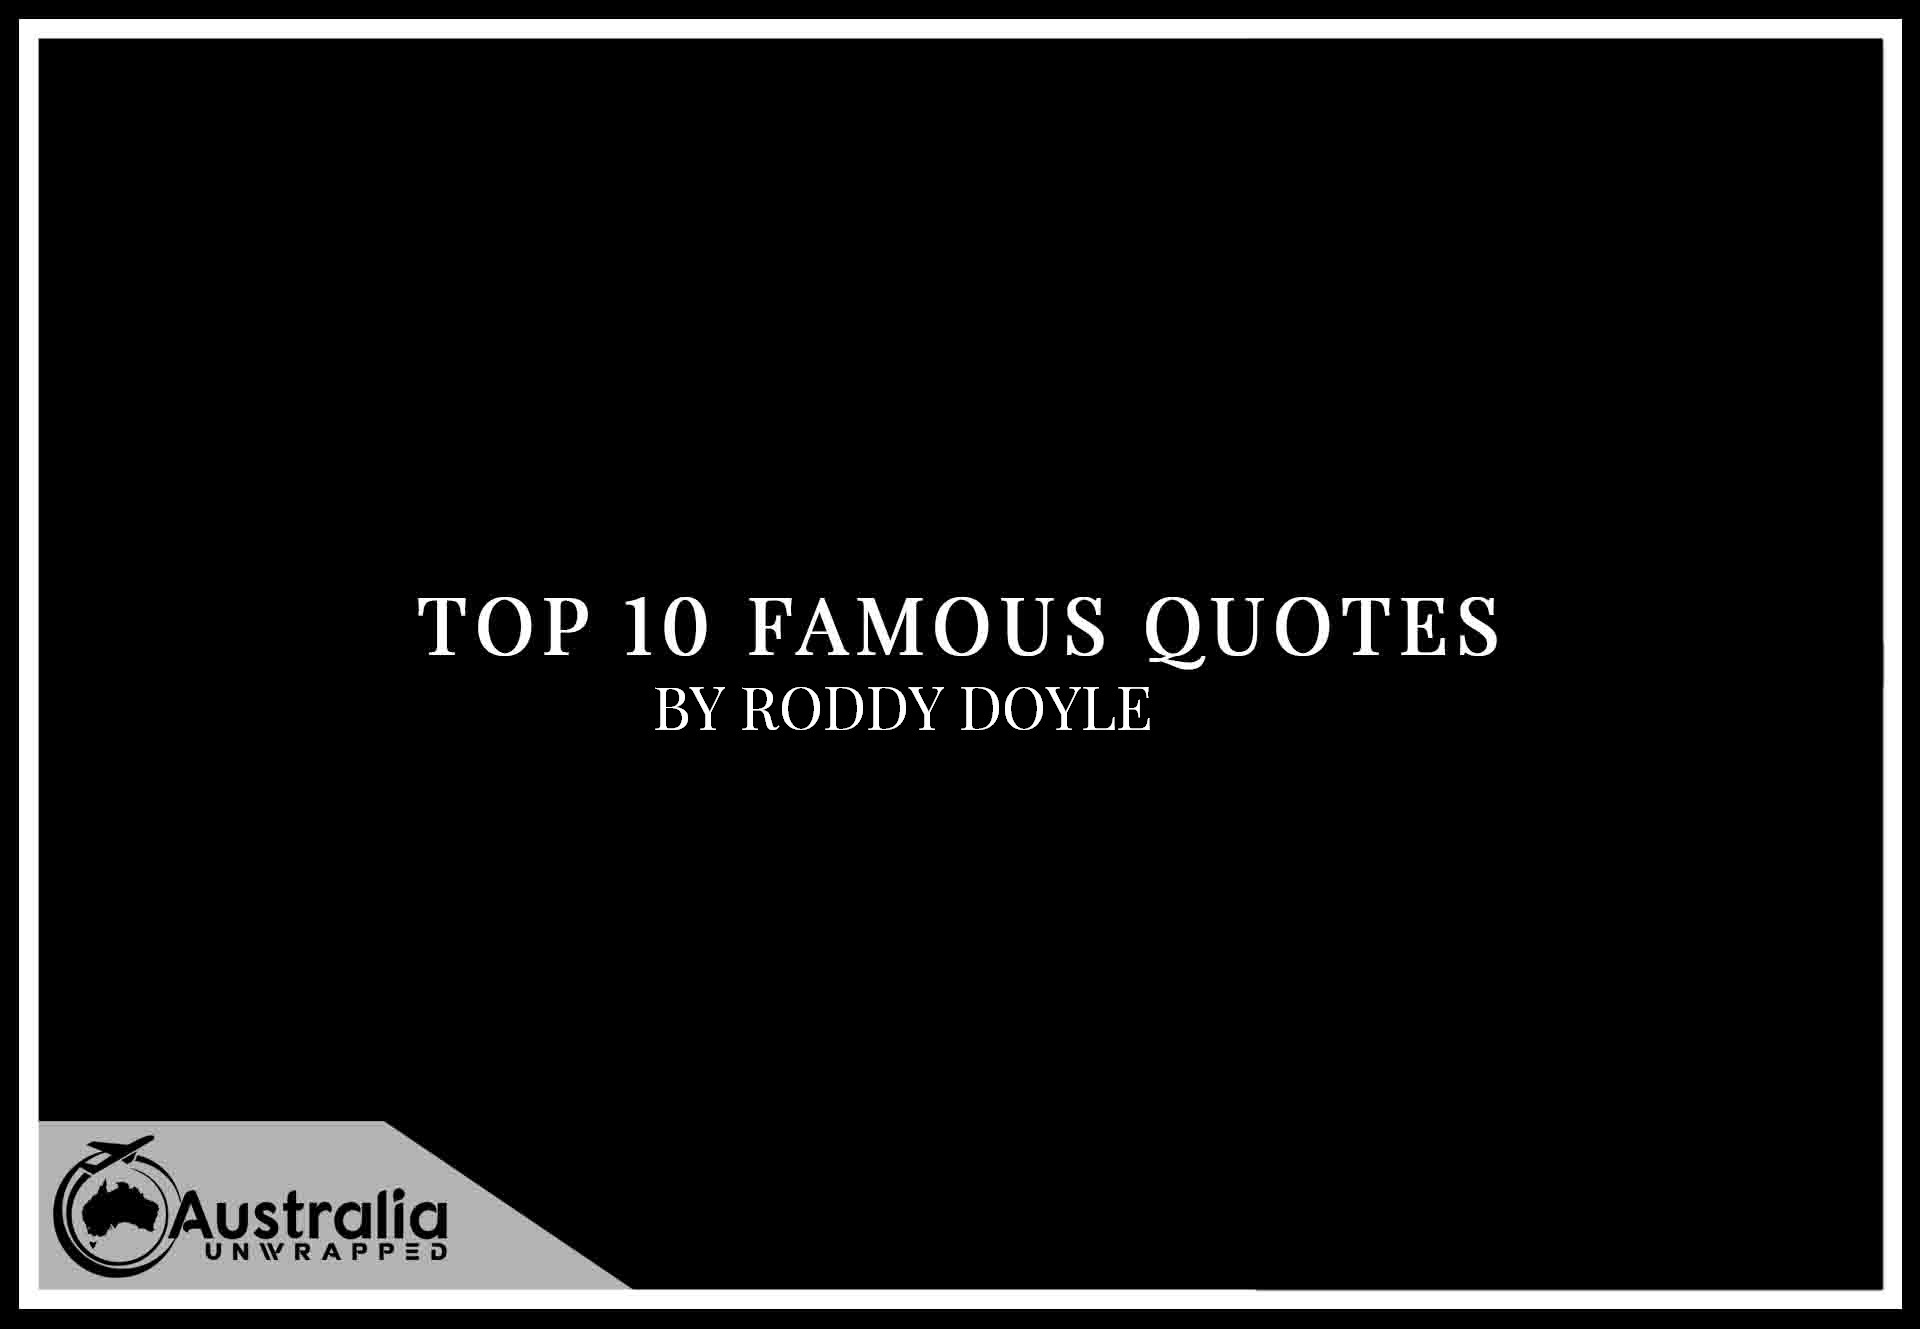 Top 10 Famous Quotes by Author Roddy Doyle